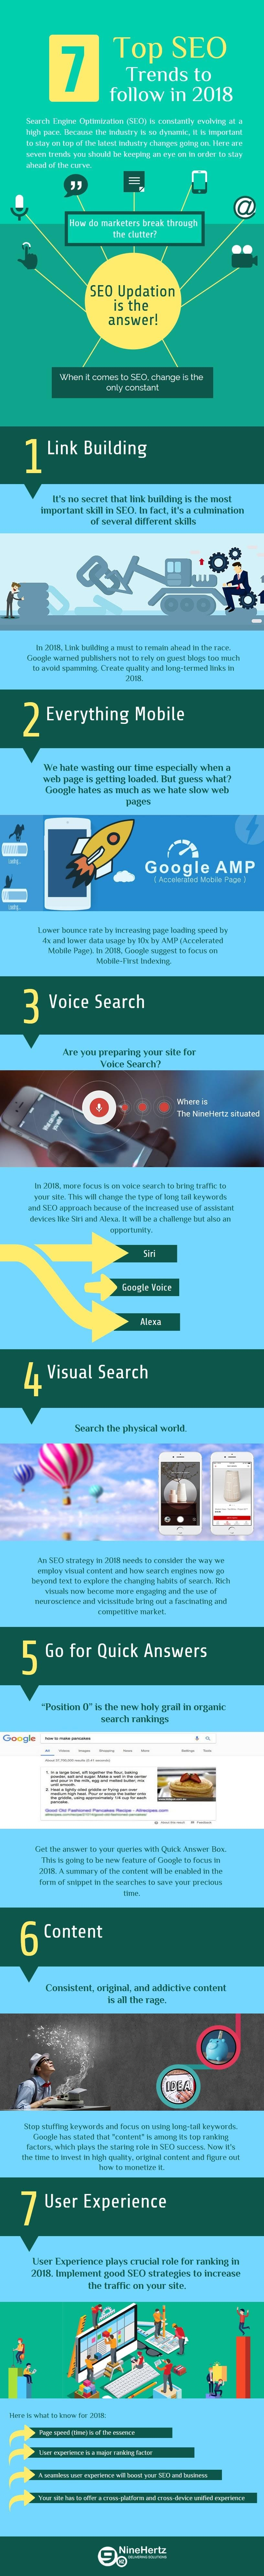 7 Top SEO Trends To Follow In 2018